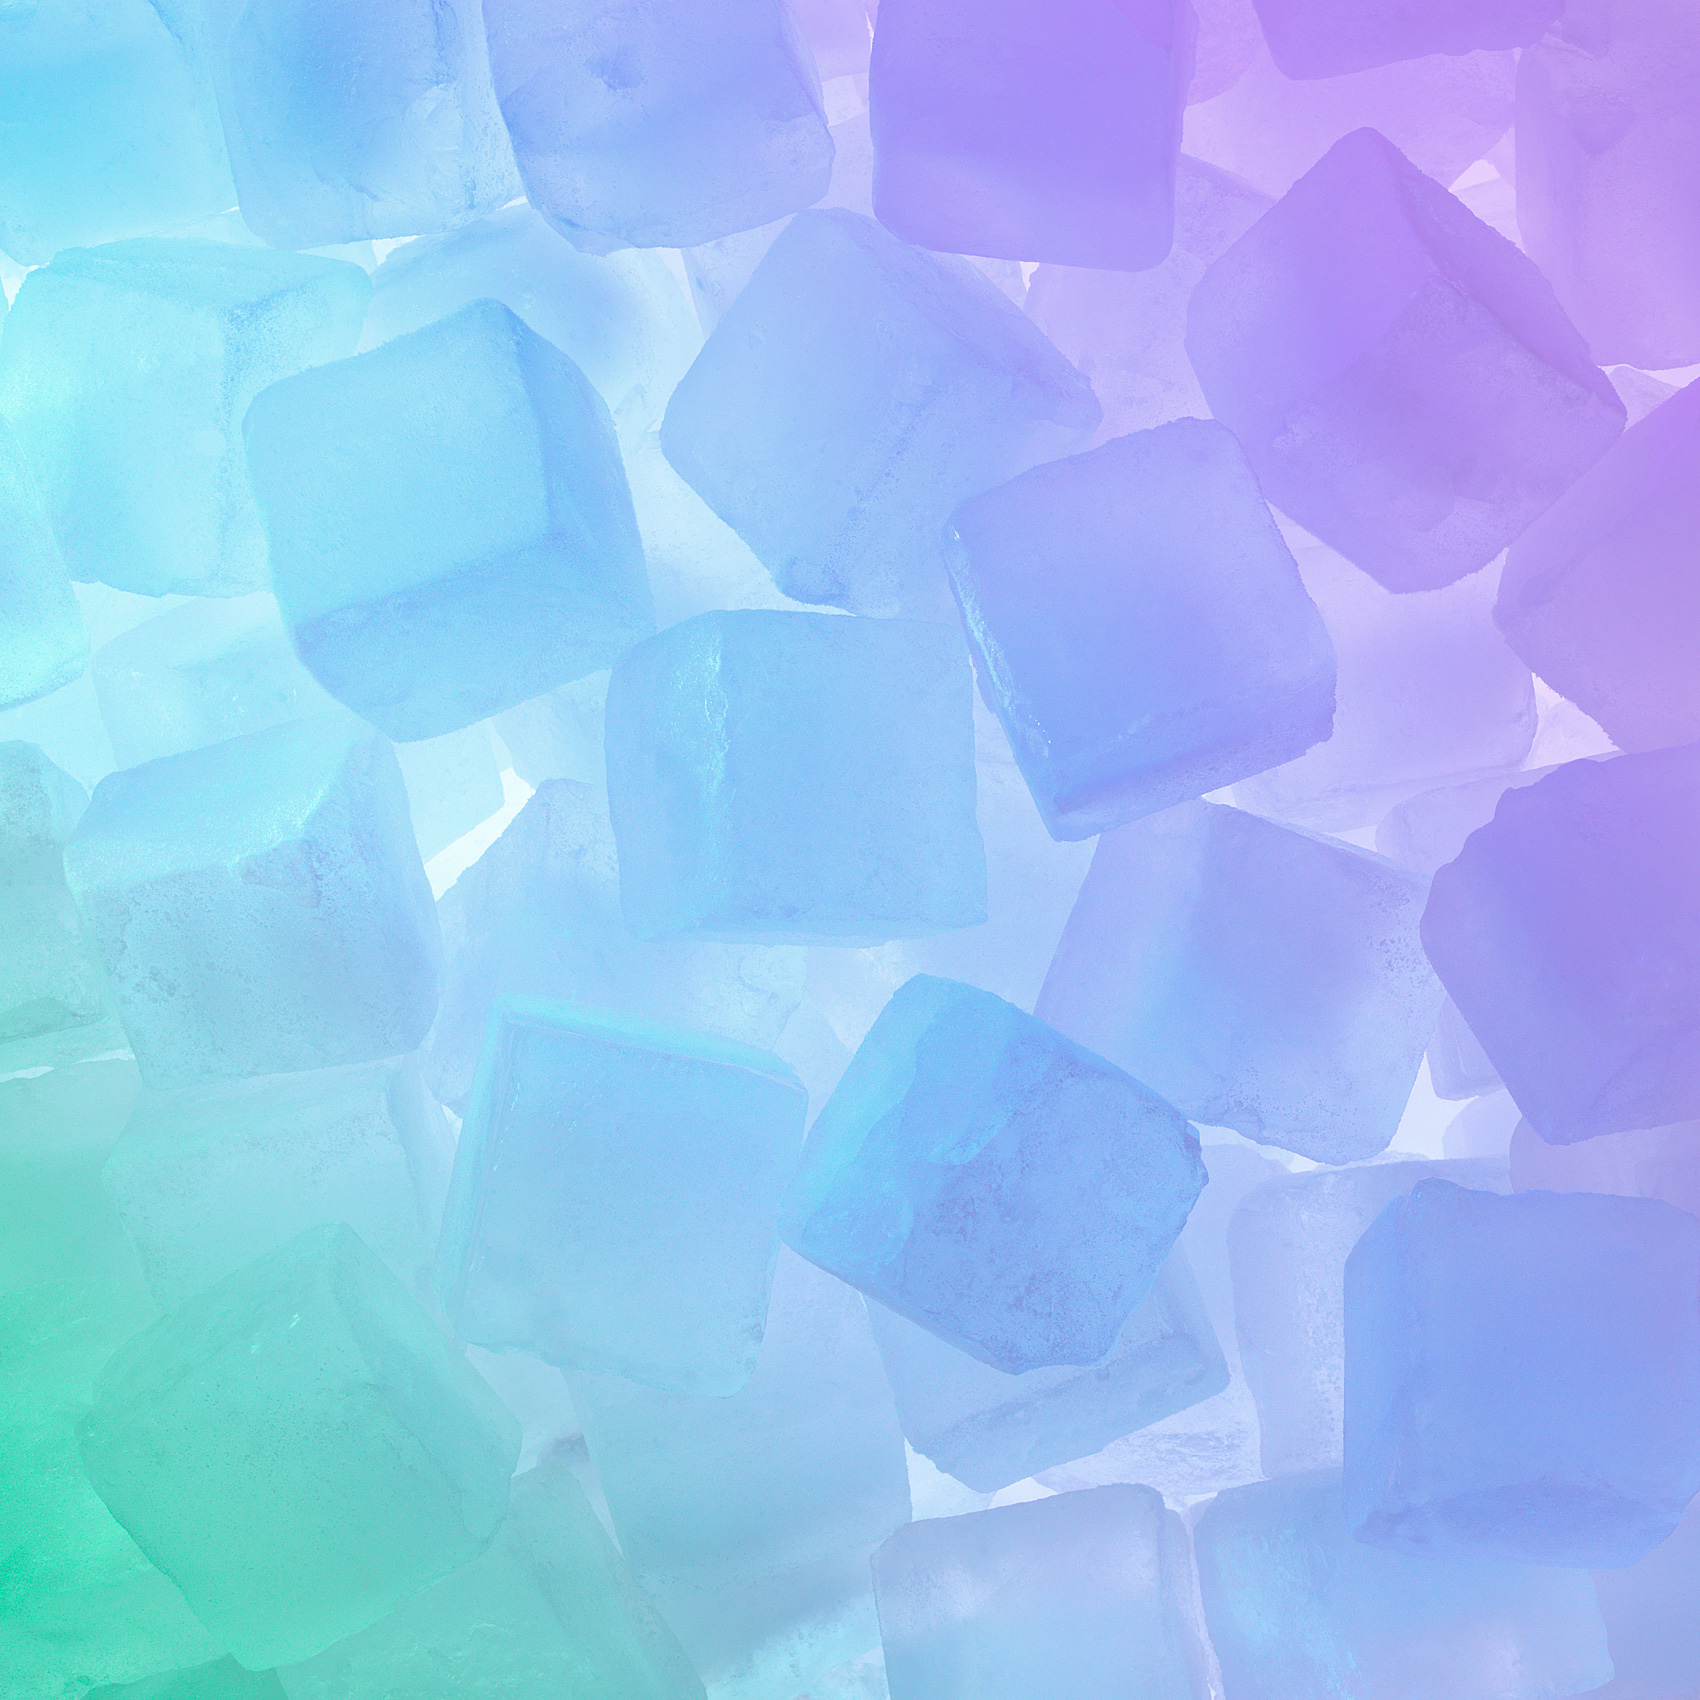 Nick_Rees-Abstract-Rainbow_Ice-05